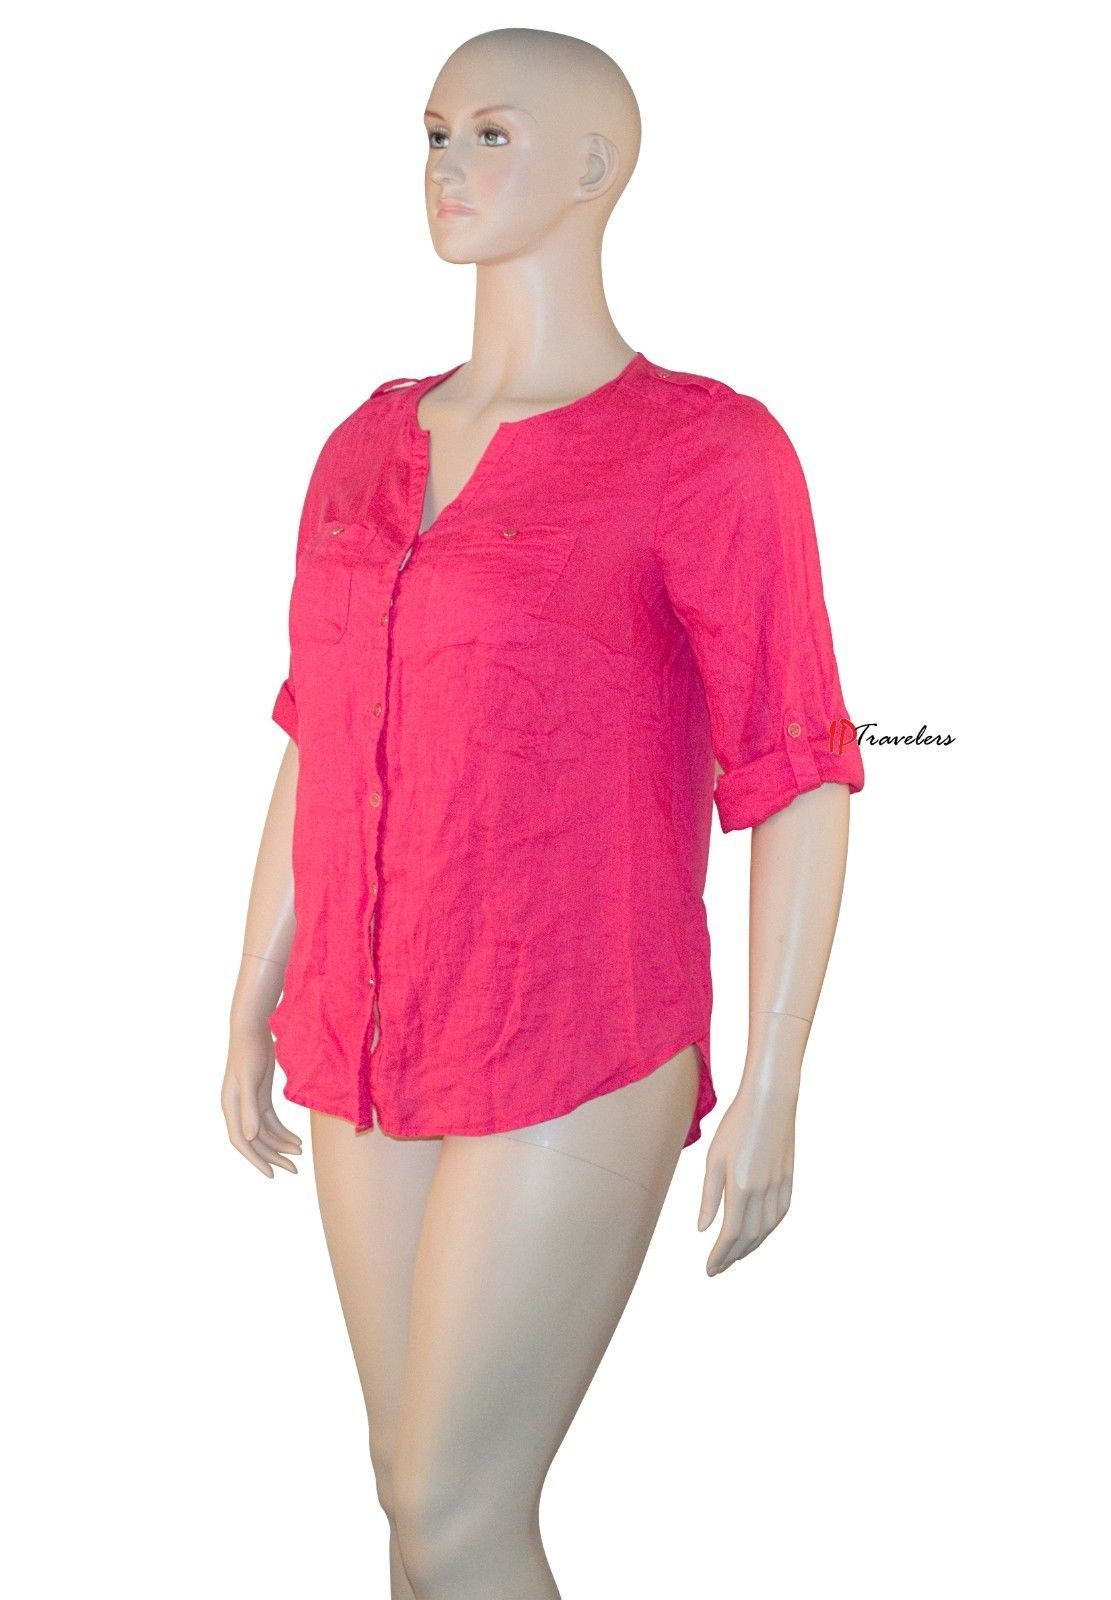 JM Collection Women's Top Blouse Plus 14W Radiant Pink 100% Linen 3/4 Sleeve $56